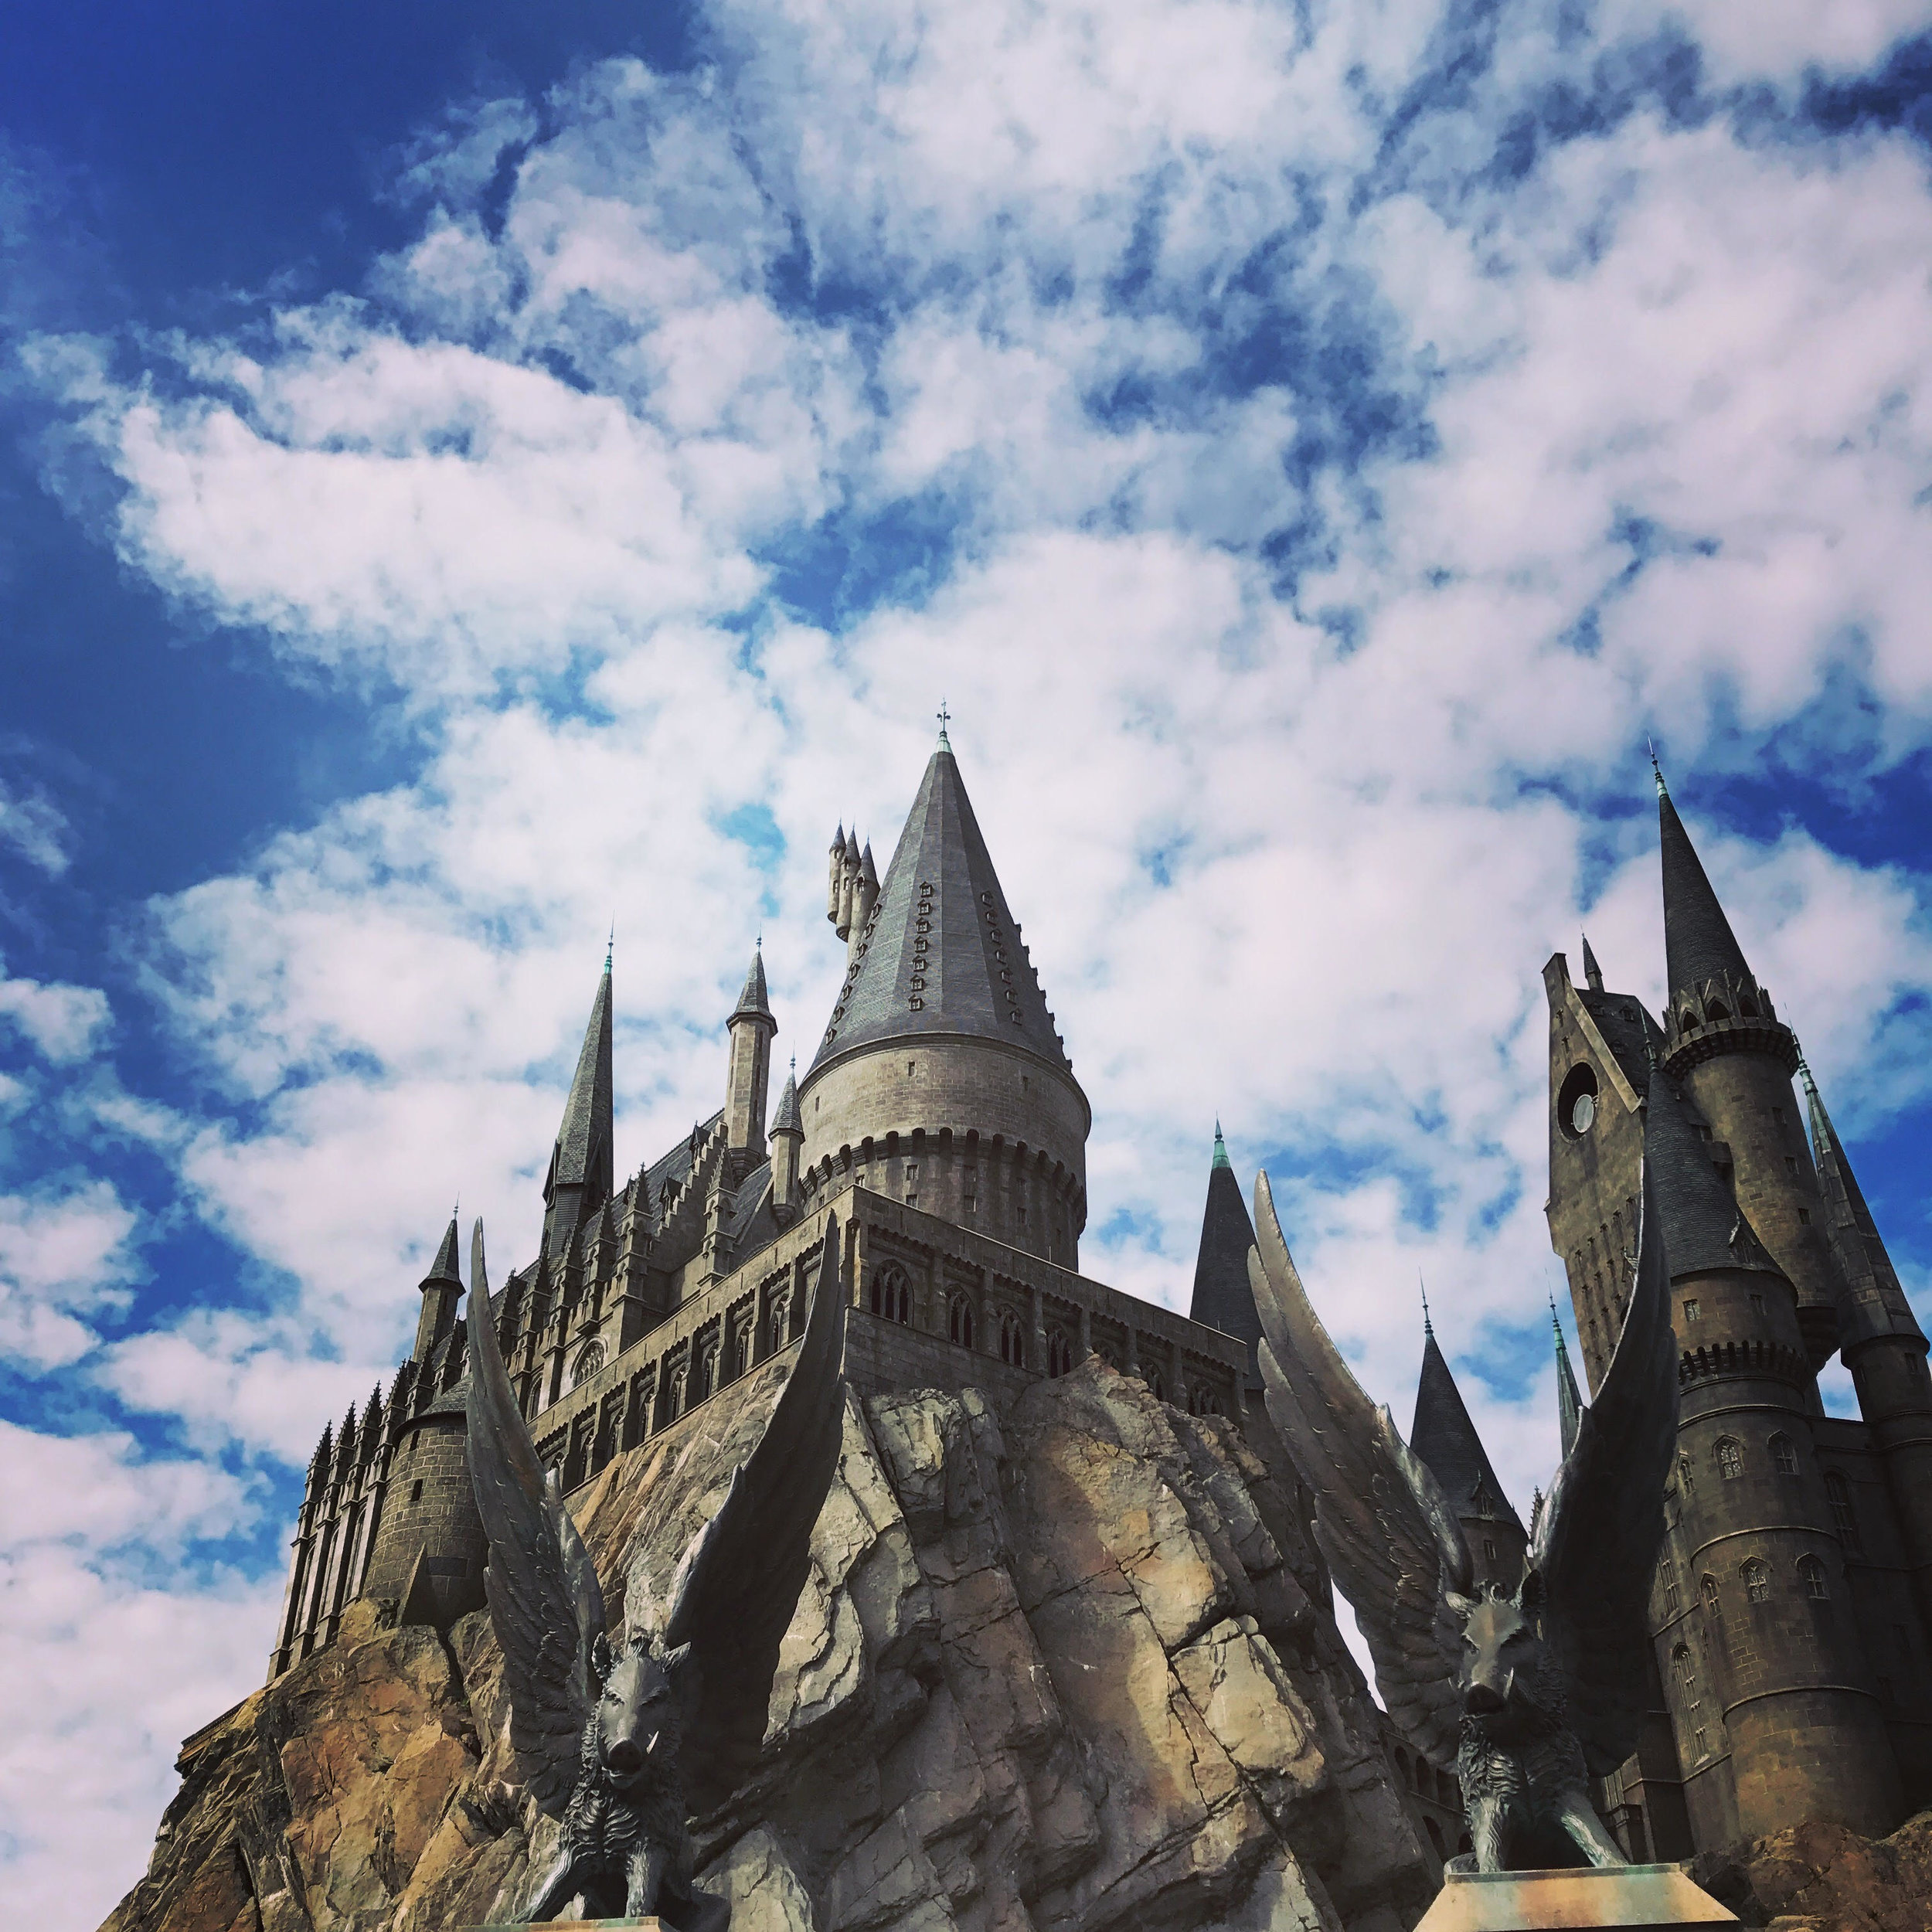 Hogwarts is the setting for Harry Potter and the Forbidden Journey, one of the most popular rides in the park.